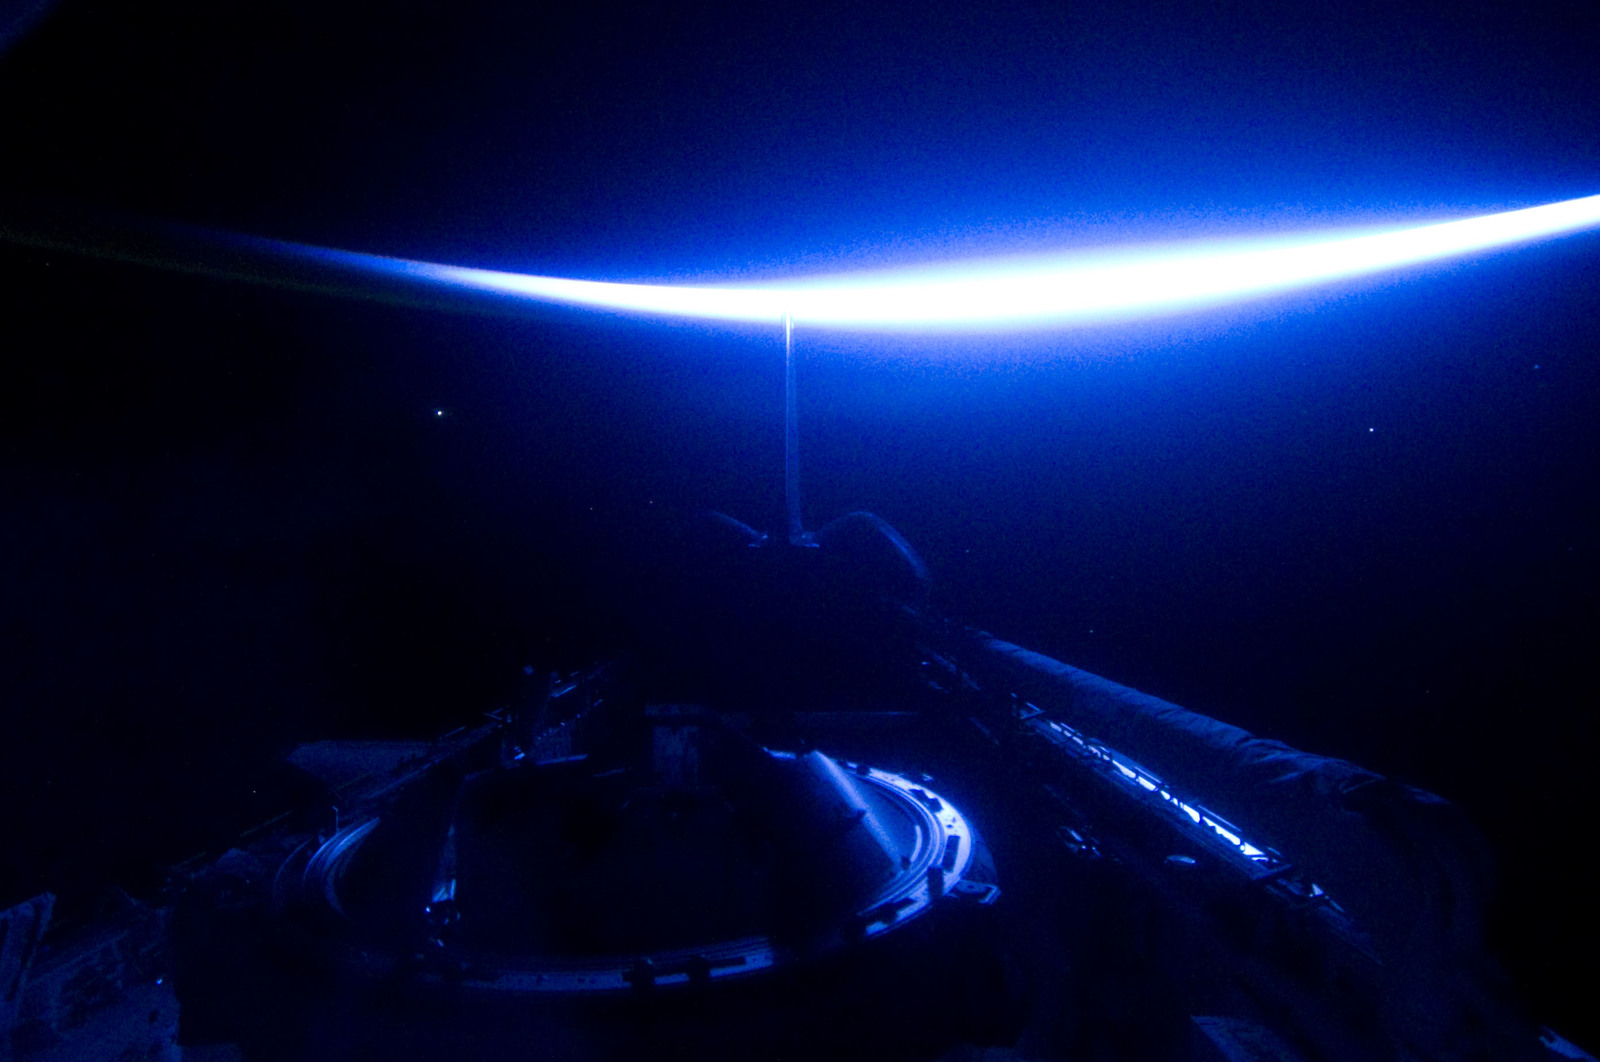 S134E012407 - STS-134 - View of Sun Rising from behind Earth's Horizon